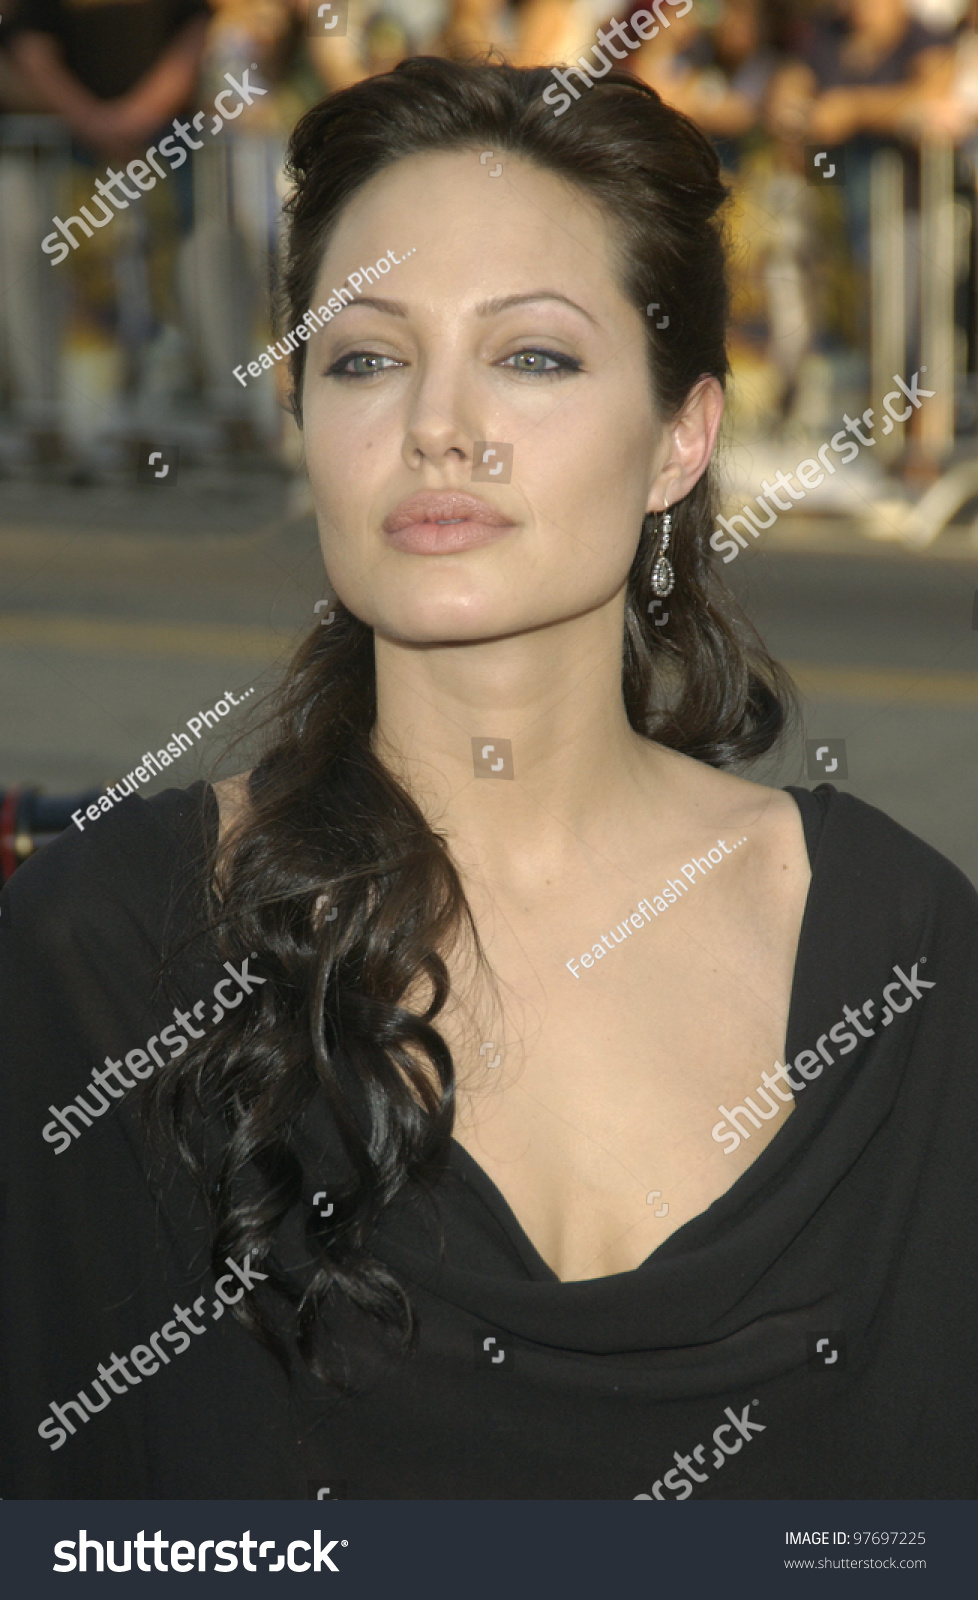 Actress Angelina Jolie World Premiere Her People Stock Image